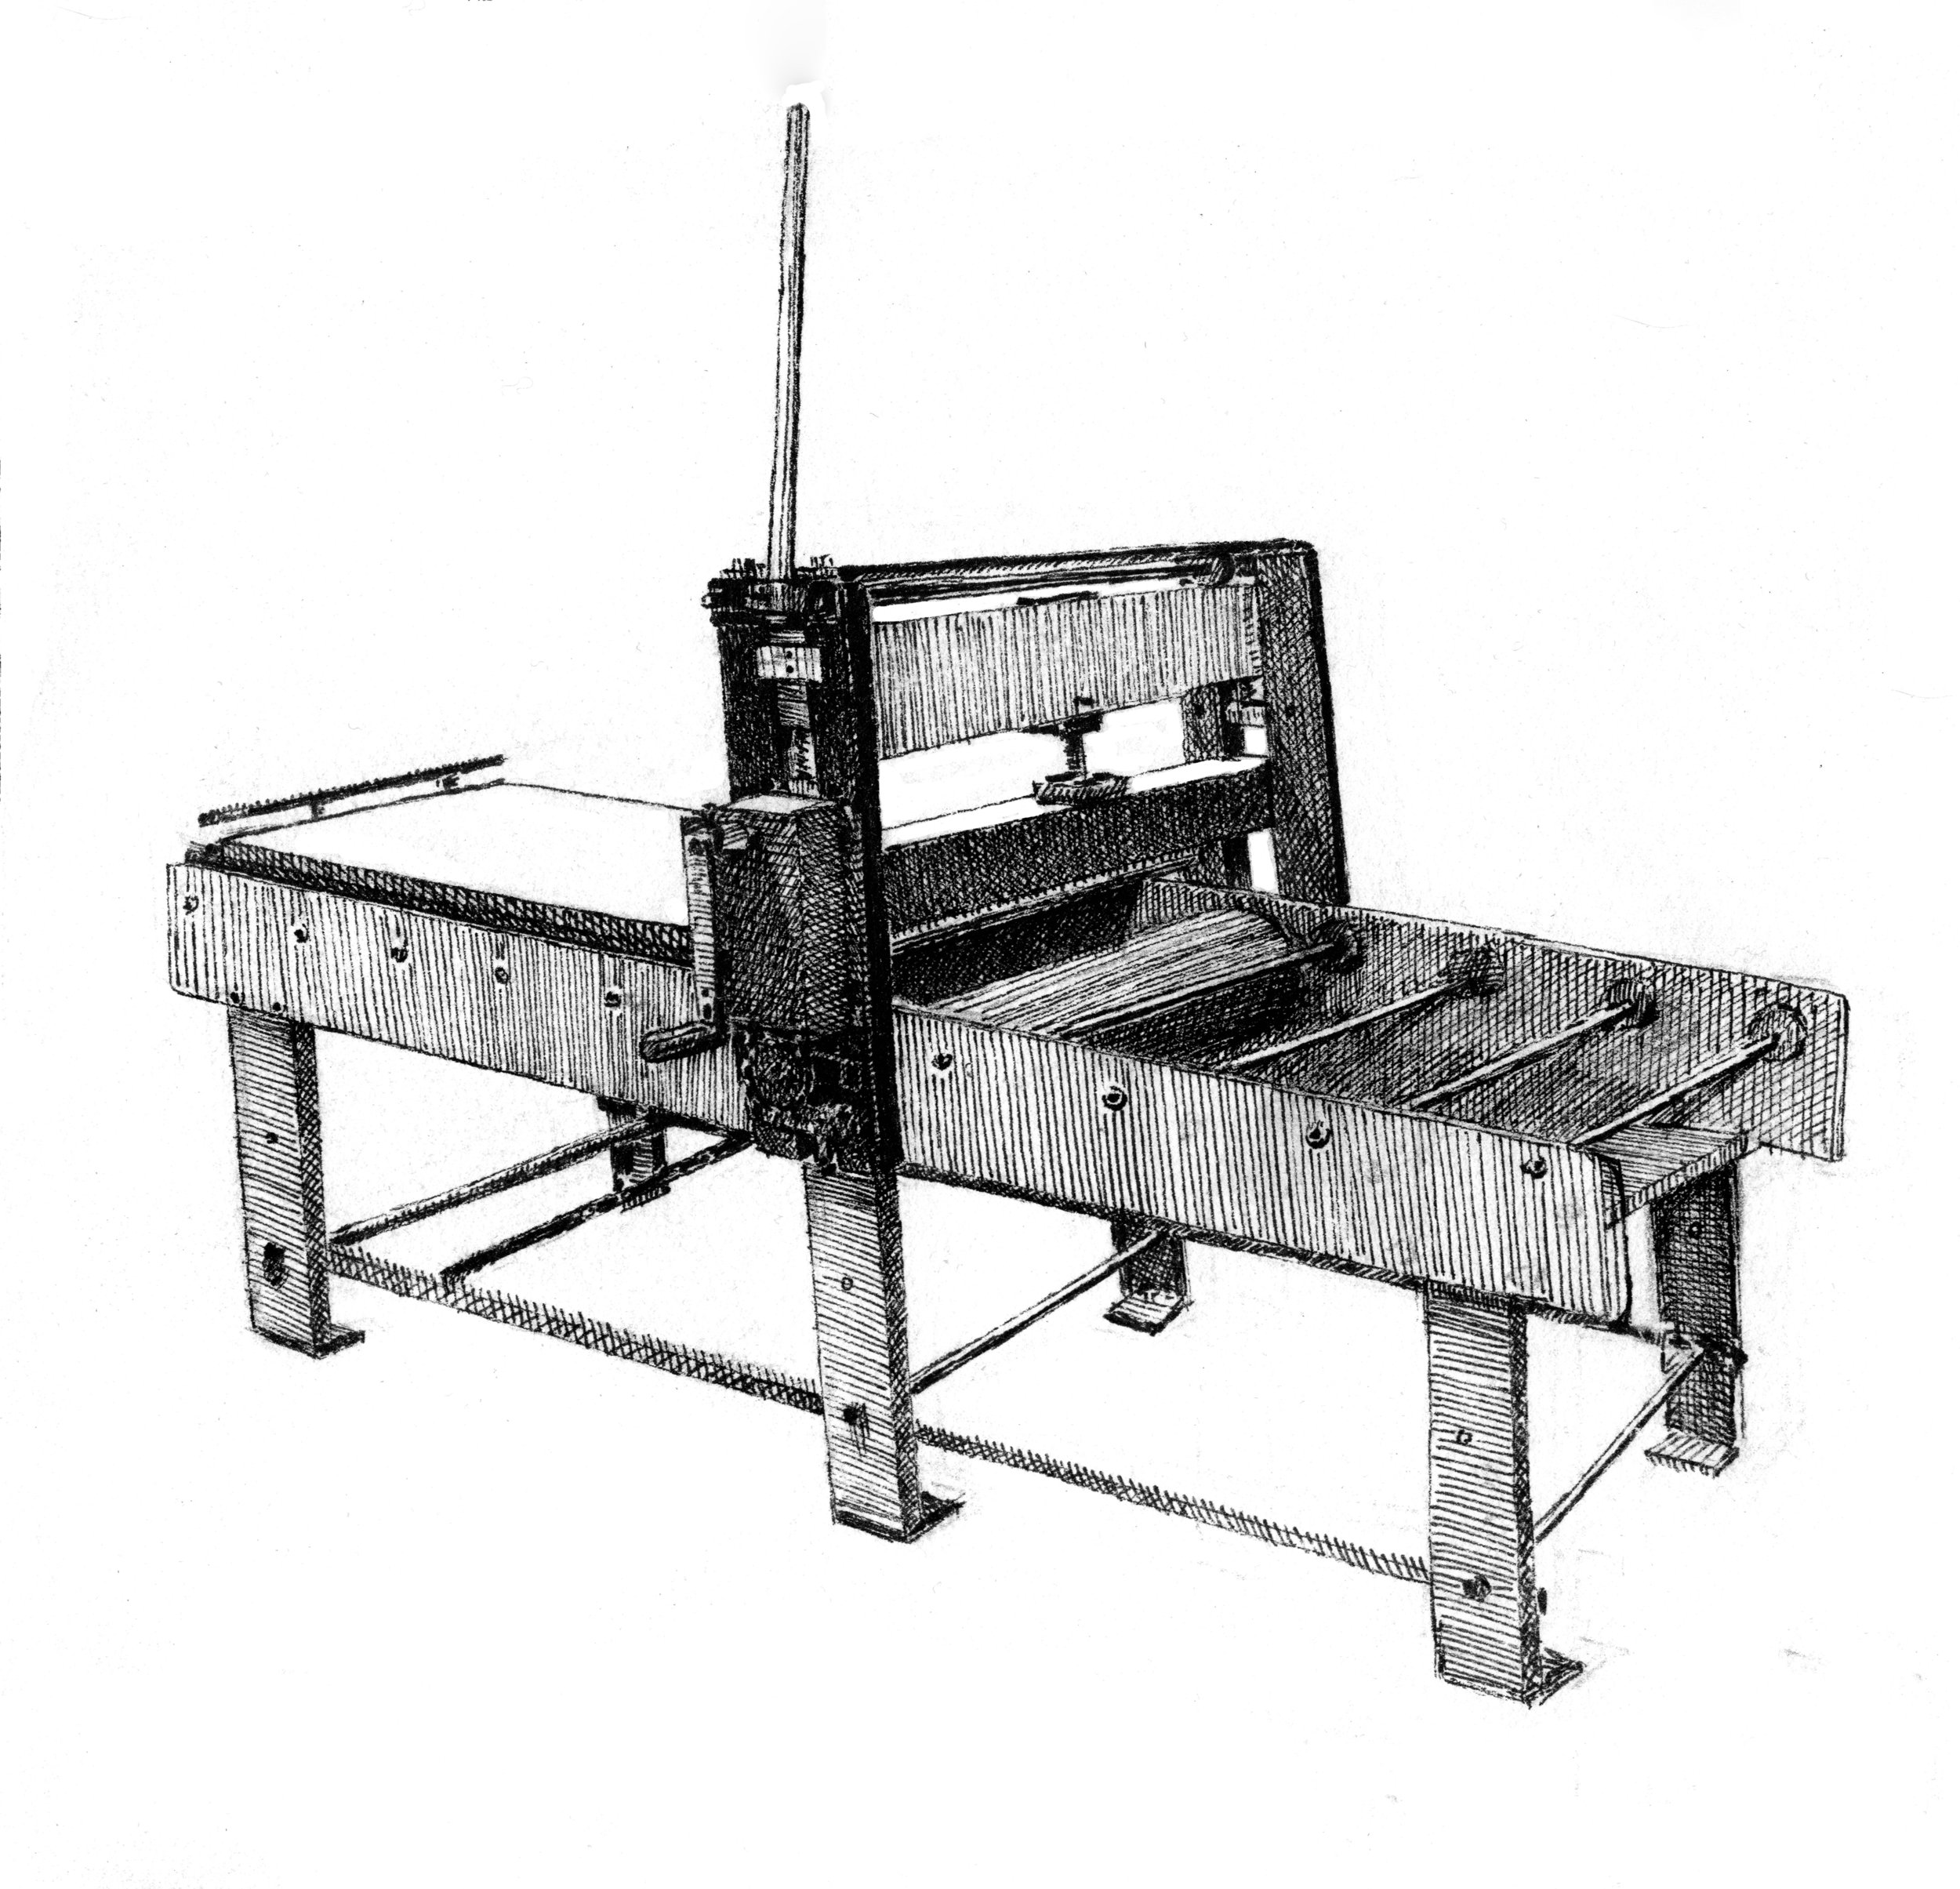 Lithography Press